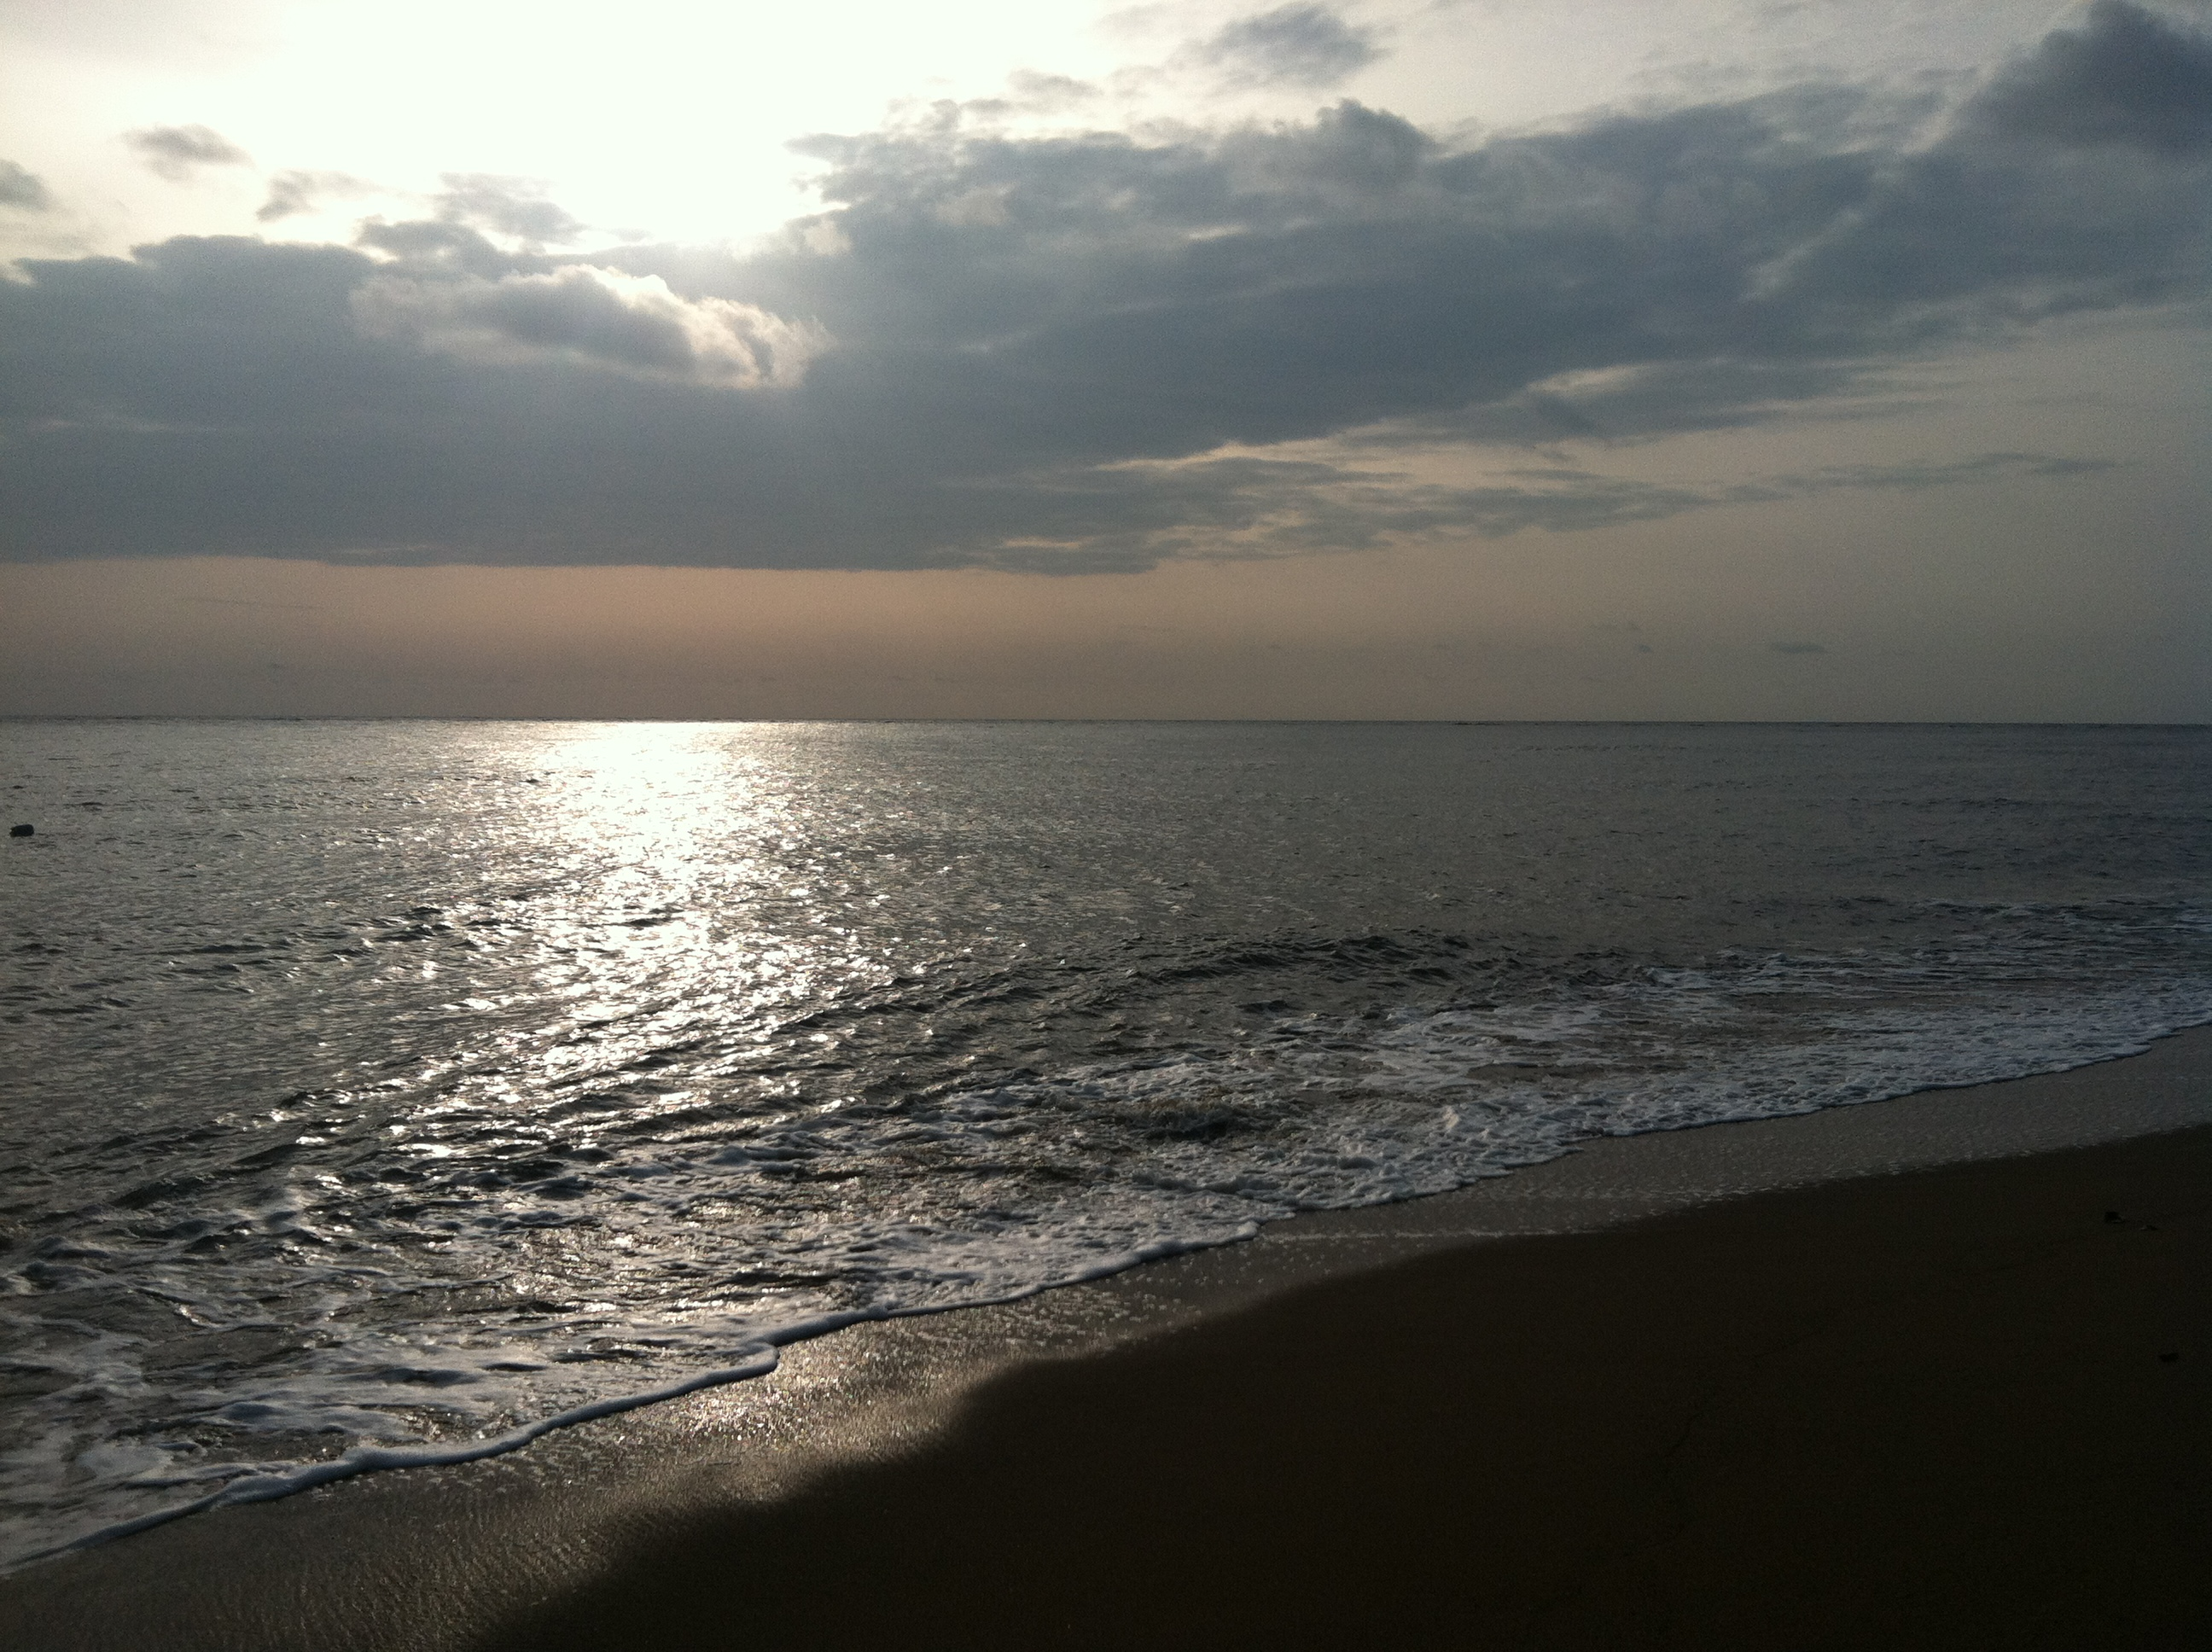 View of the Atlantic Ocean from Cameroon.